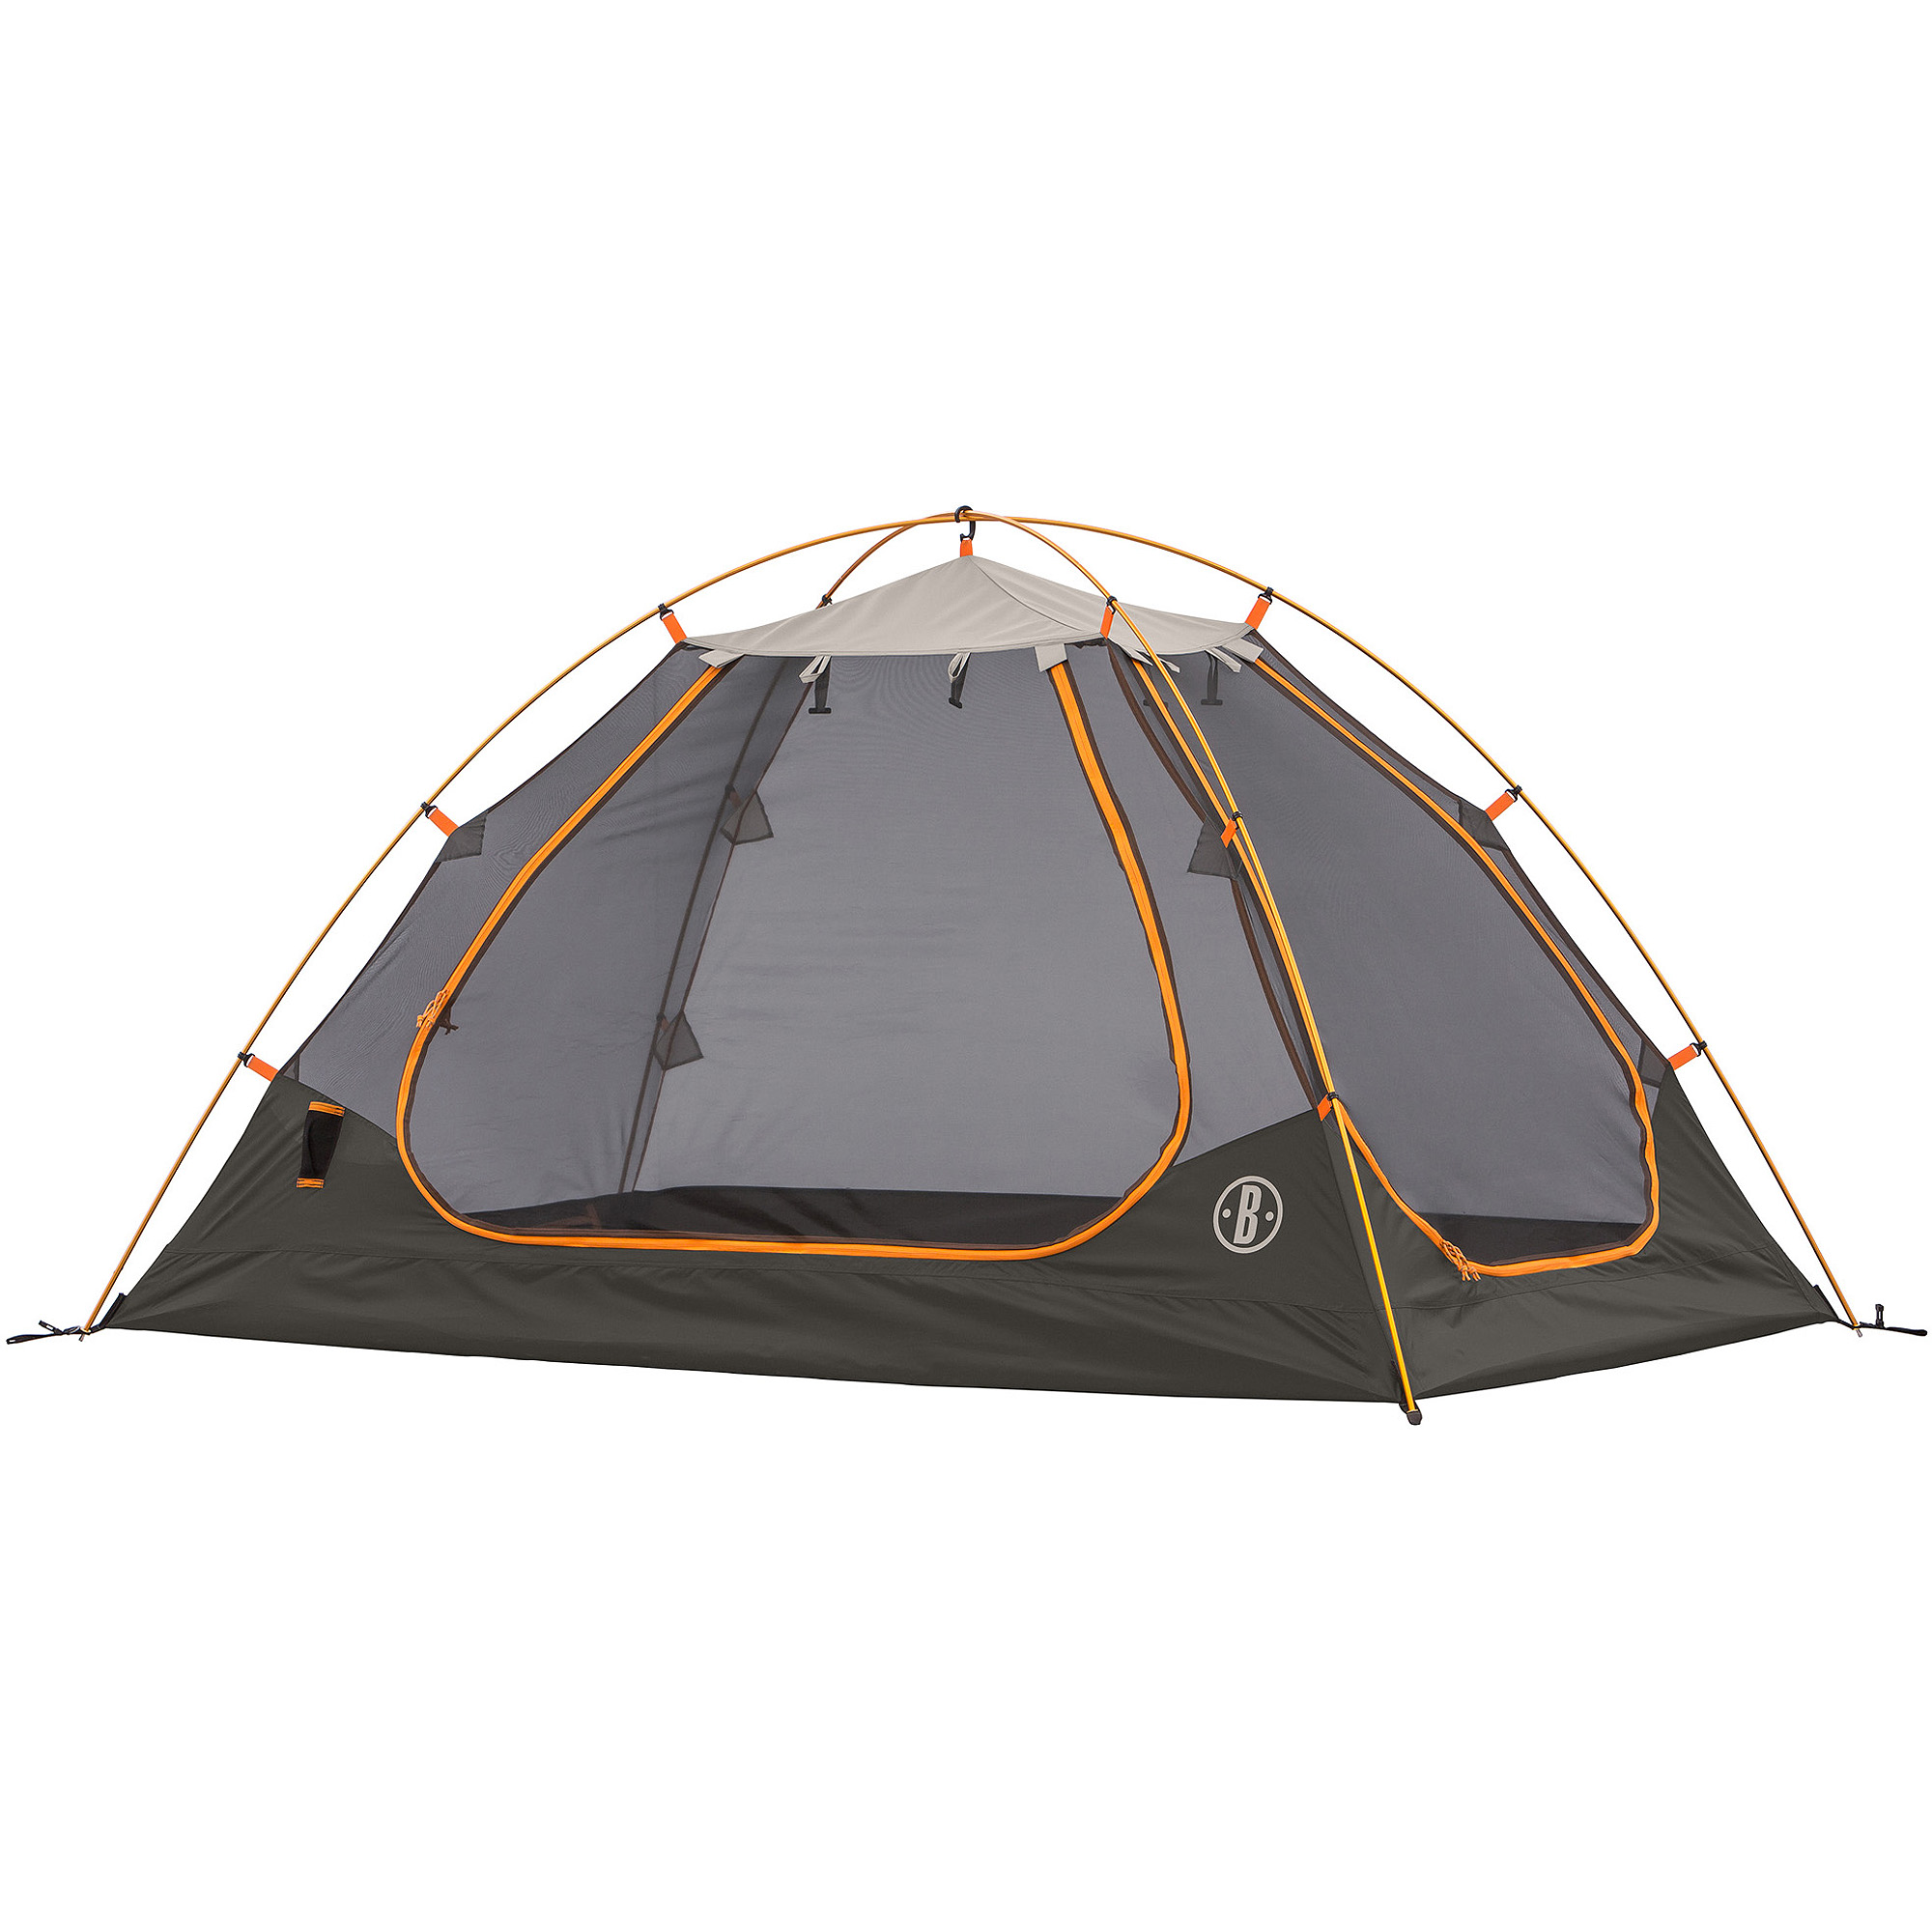 Bushnell Roam Series 7.5u0027 x 4.5u0027 Backpacking Tent Sleeps 2 - Walmart.com  sc 1 st  Walmart & Bushnell Roam Series 7.5u0027 x 4.5u0027 Backpacking Tent Sleeps 2 ...